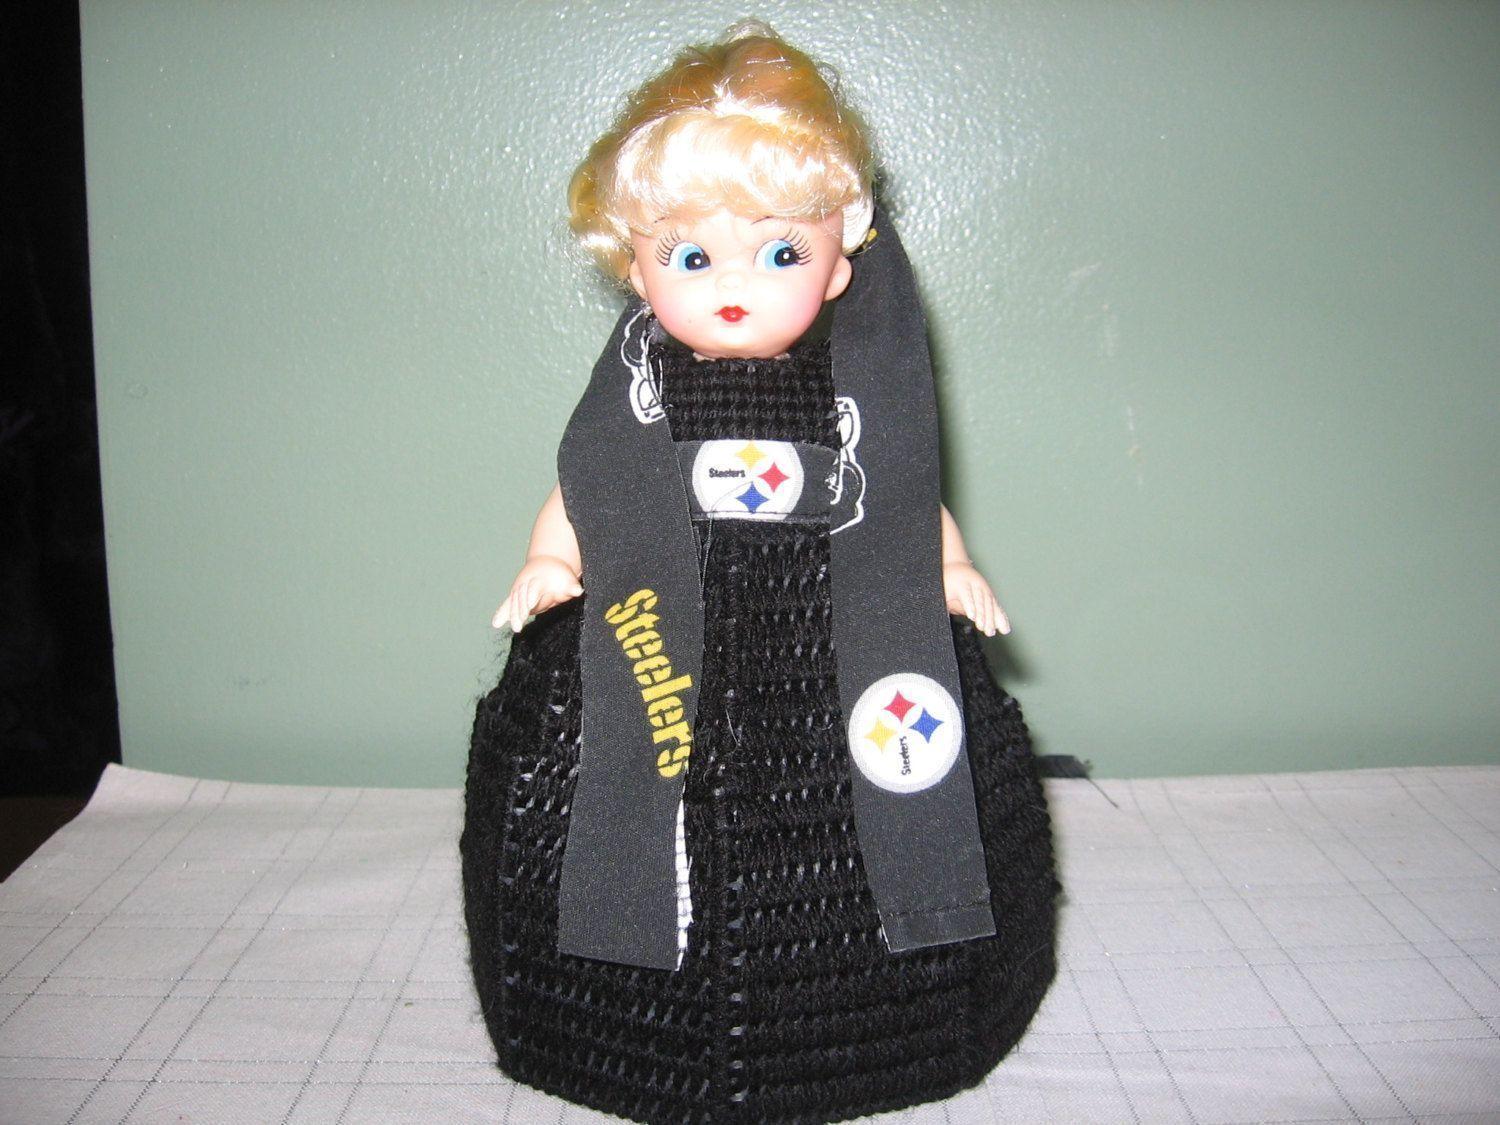 PIttsburgh Steelers Plastic Canvas Air Freshner Doll #airfreshnerdolls PIttsburgh Steelers Plastic Canvas Air Freshner Doll by CreationsbyAMJ on Etsy #airfreshnerdolls PIttsburgh Steelers Plastic Canvas Air Freshner Doll #airfreshnerdolls PIttsburgh Steelers Plastic Canvas Air Freshner Doll by CreationsbyAMJ on Etsy #airfreshnerdolls PIttsburgh Steelers Plastic Canvas Air Freshner Doll #airfreshnerdolls PIttsburgh Steelers Plastic Canvas Air Freshner Doll by CreationsbyAMJ on Etsy #airfreshnerdo #airfreshnerdolls